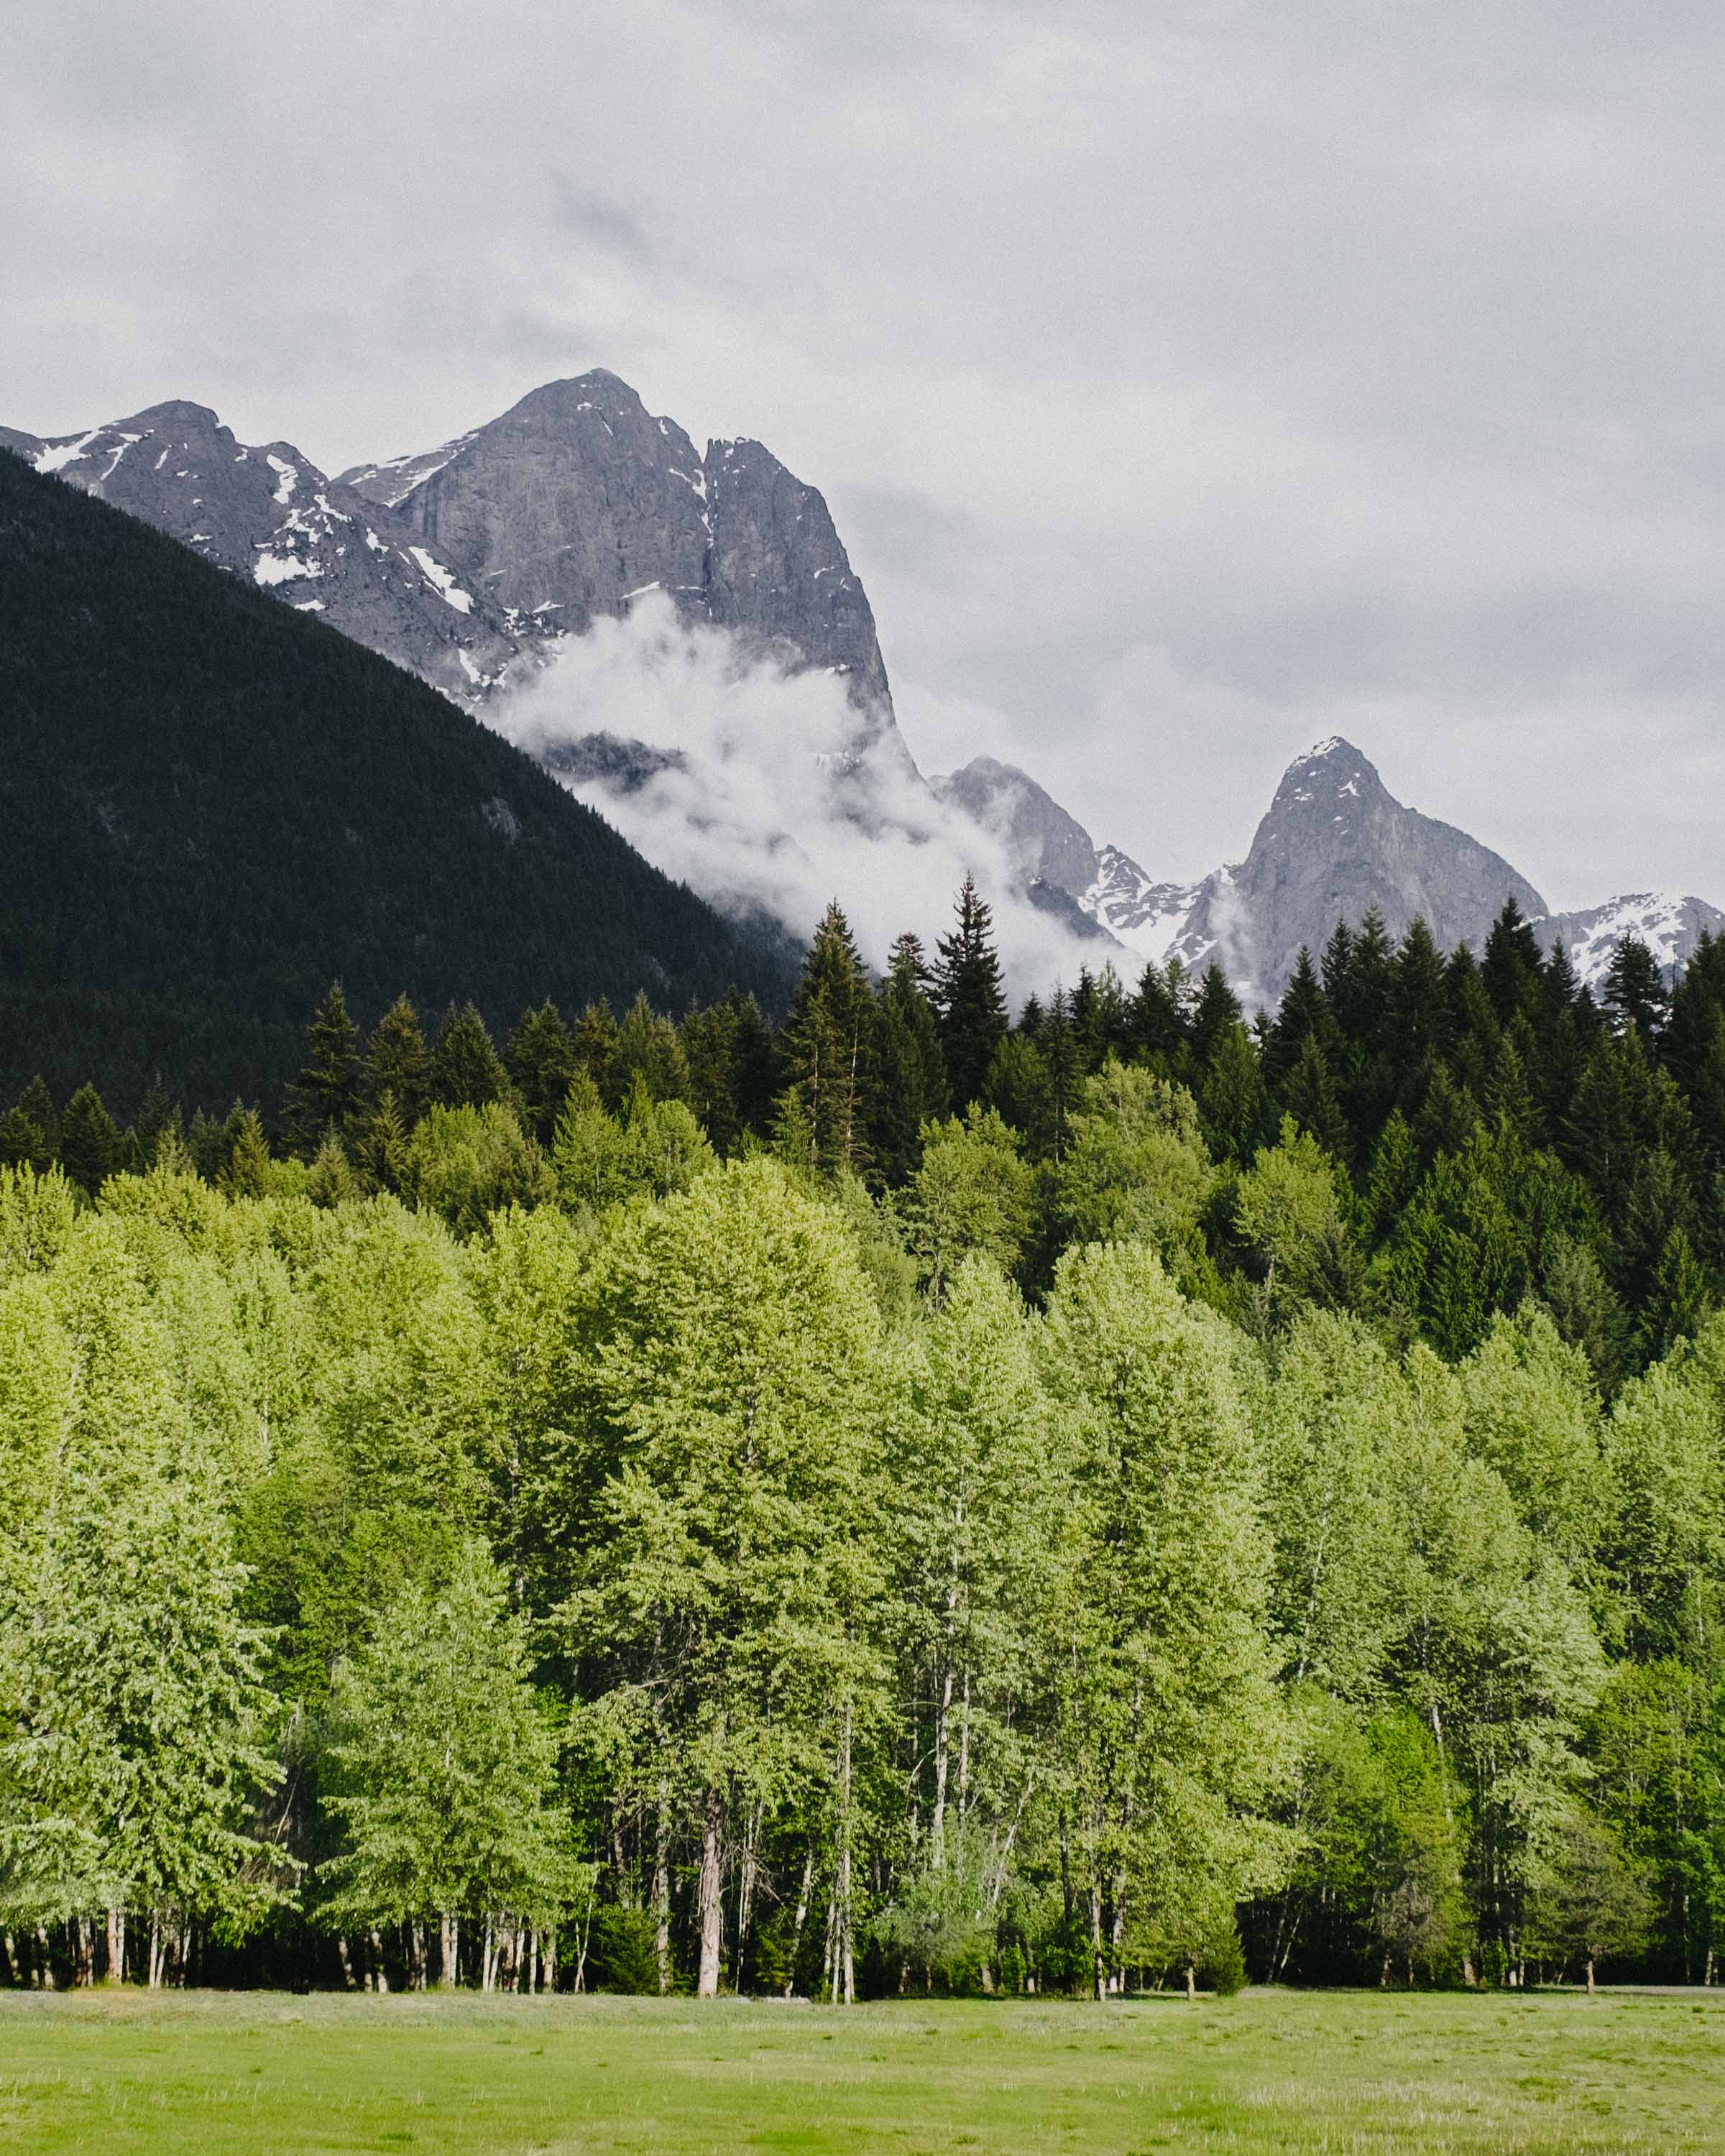 View of Hozomeen Mountain from Skagit Valley Provincial Park